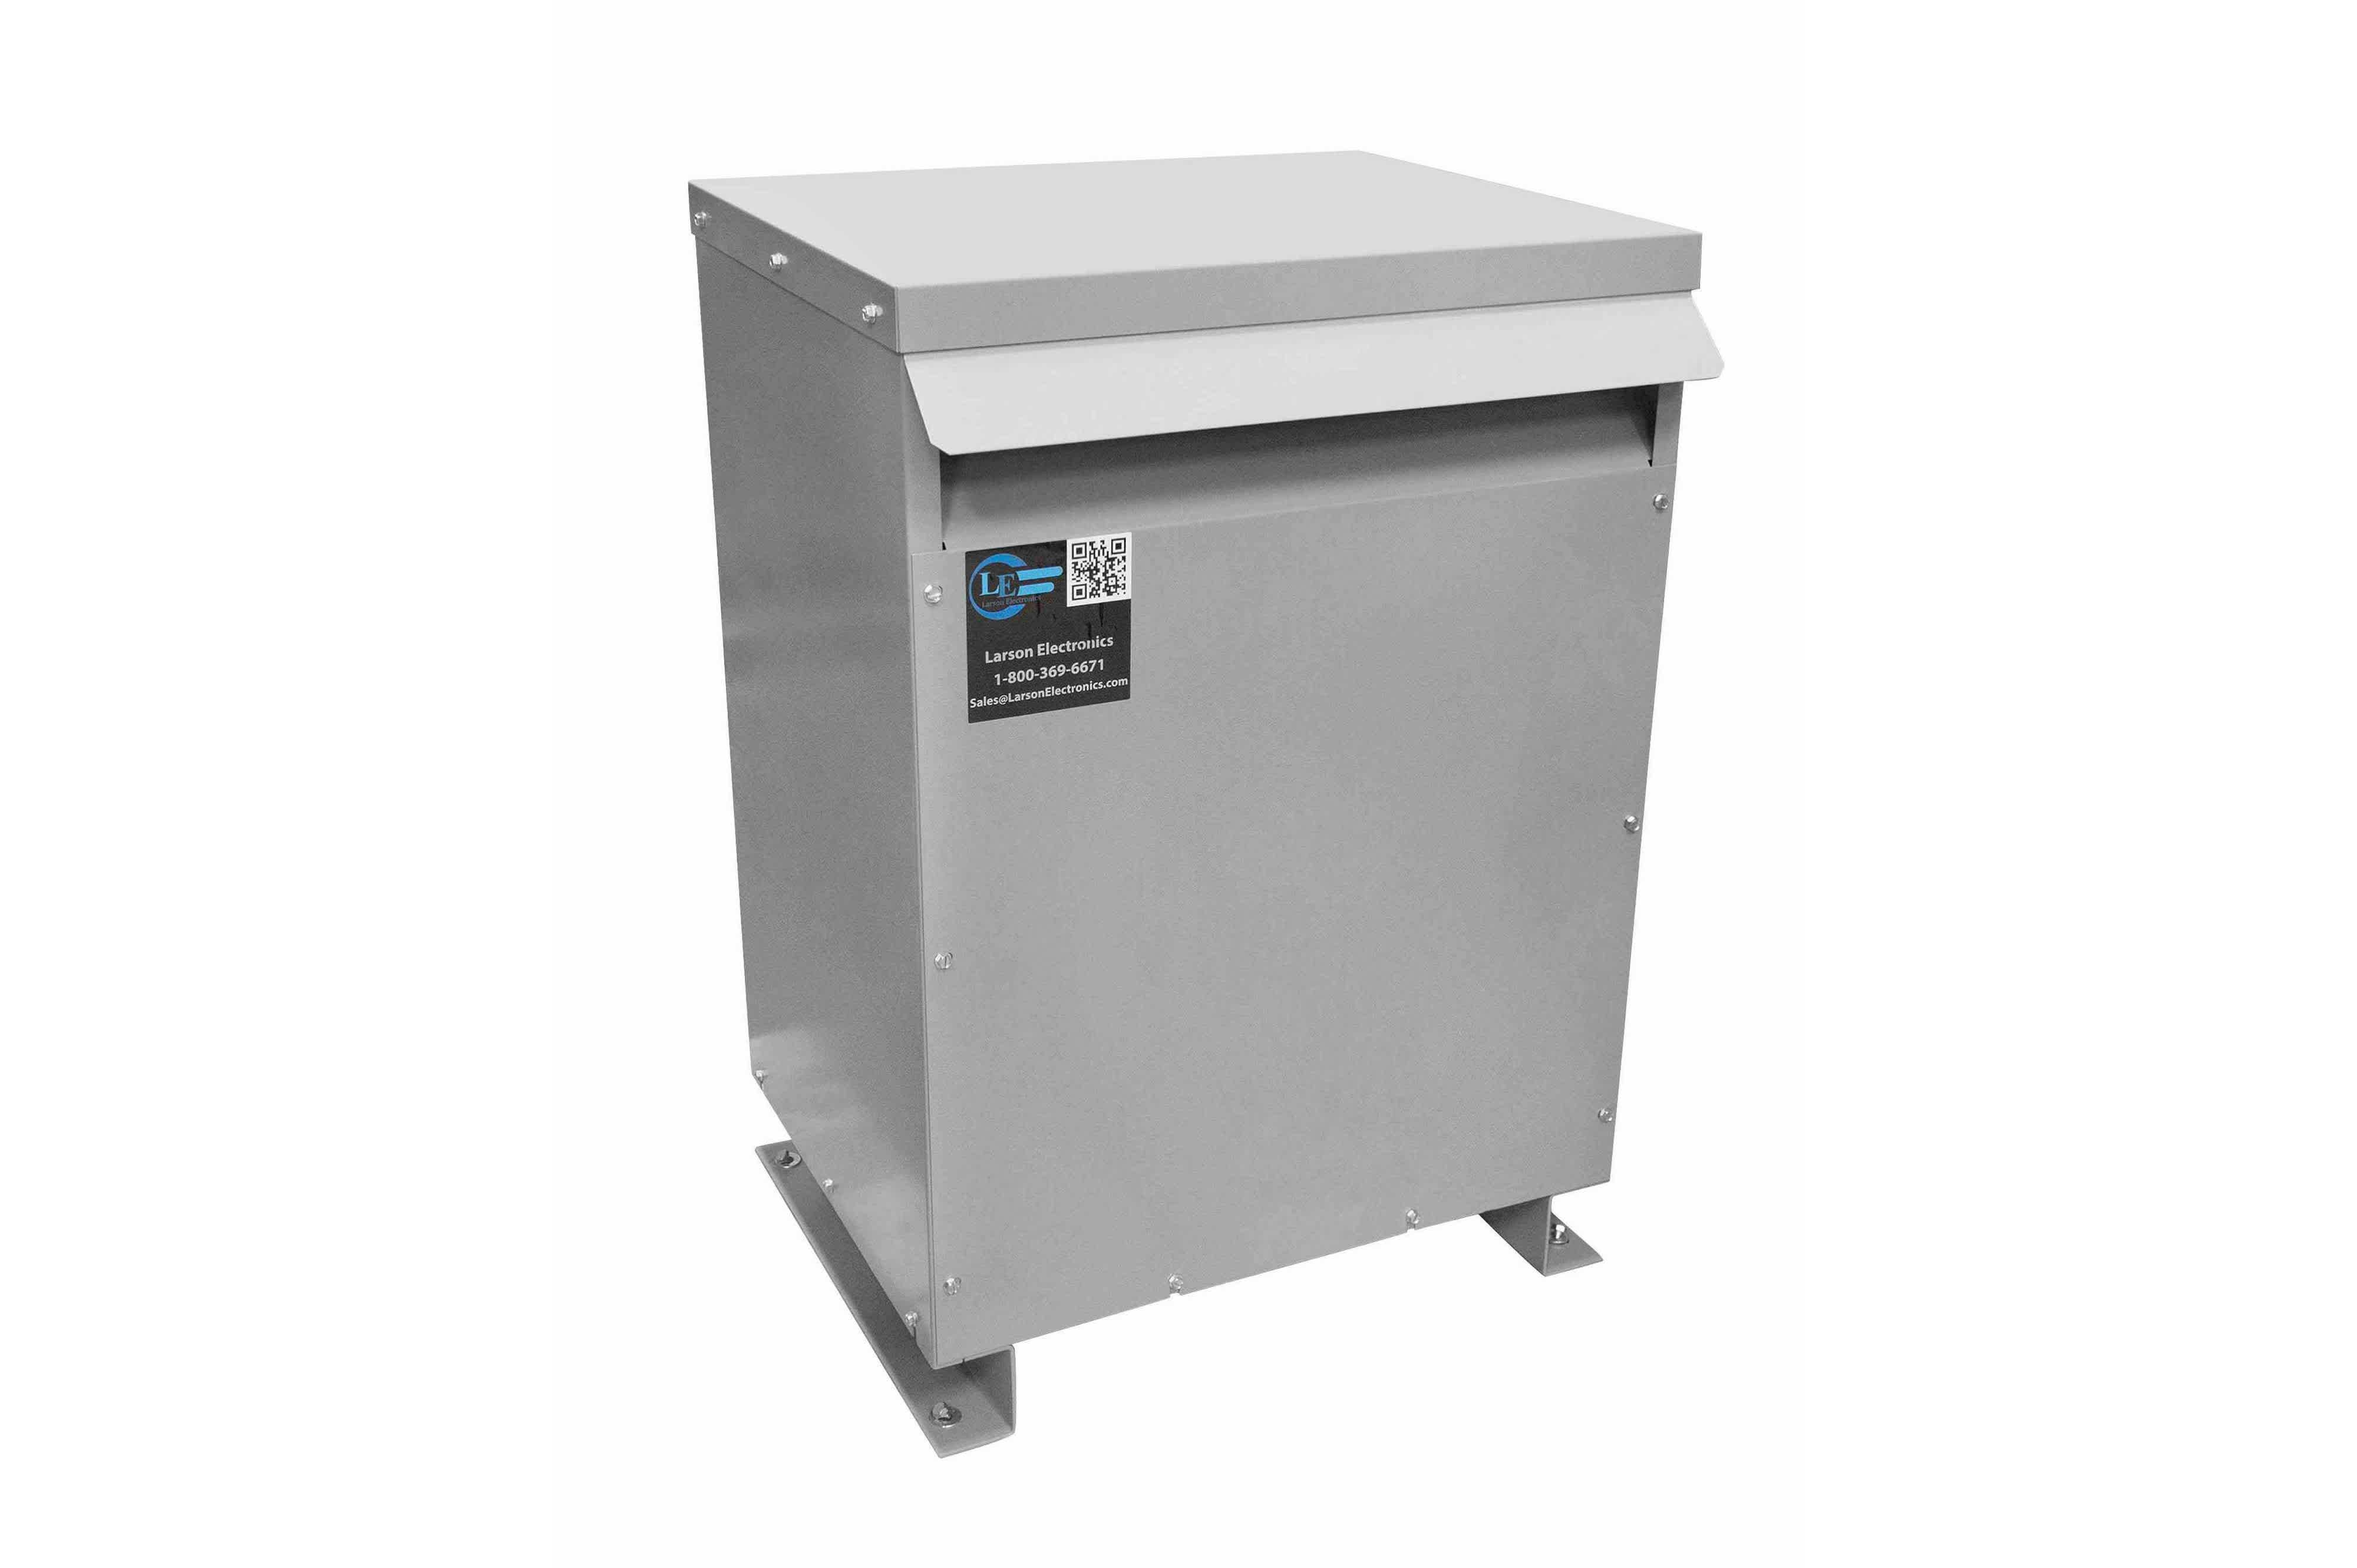 110 kVA 3PH Isolation Transformer, 480V Wye Primary, 480Y/277 Wye-N Secondary, N3R, Ventilated, 60 Hz